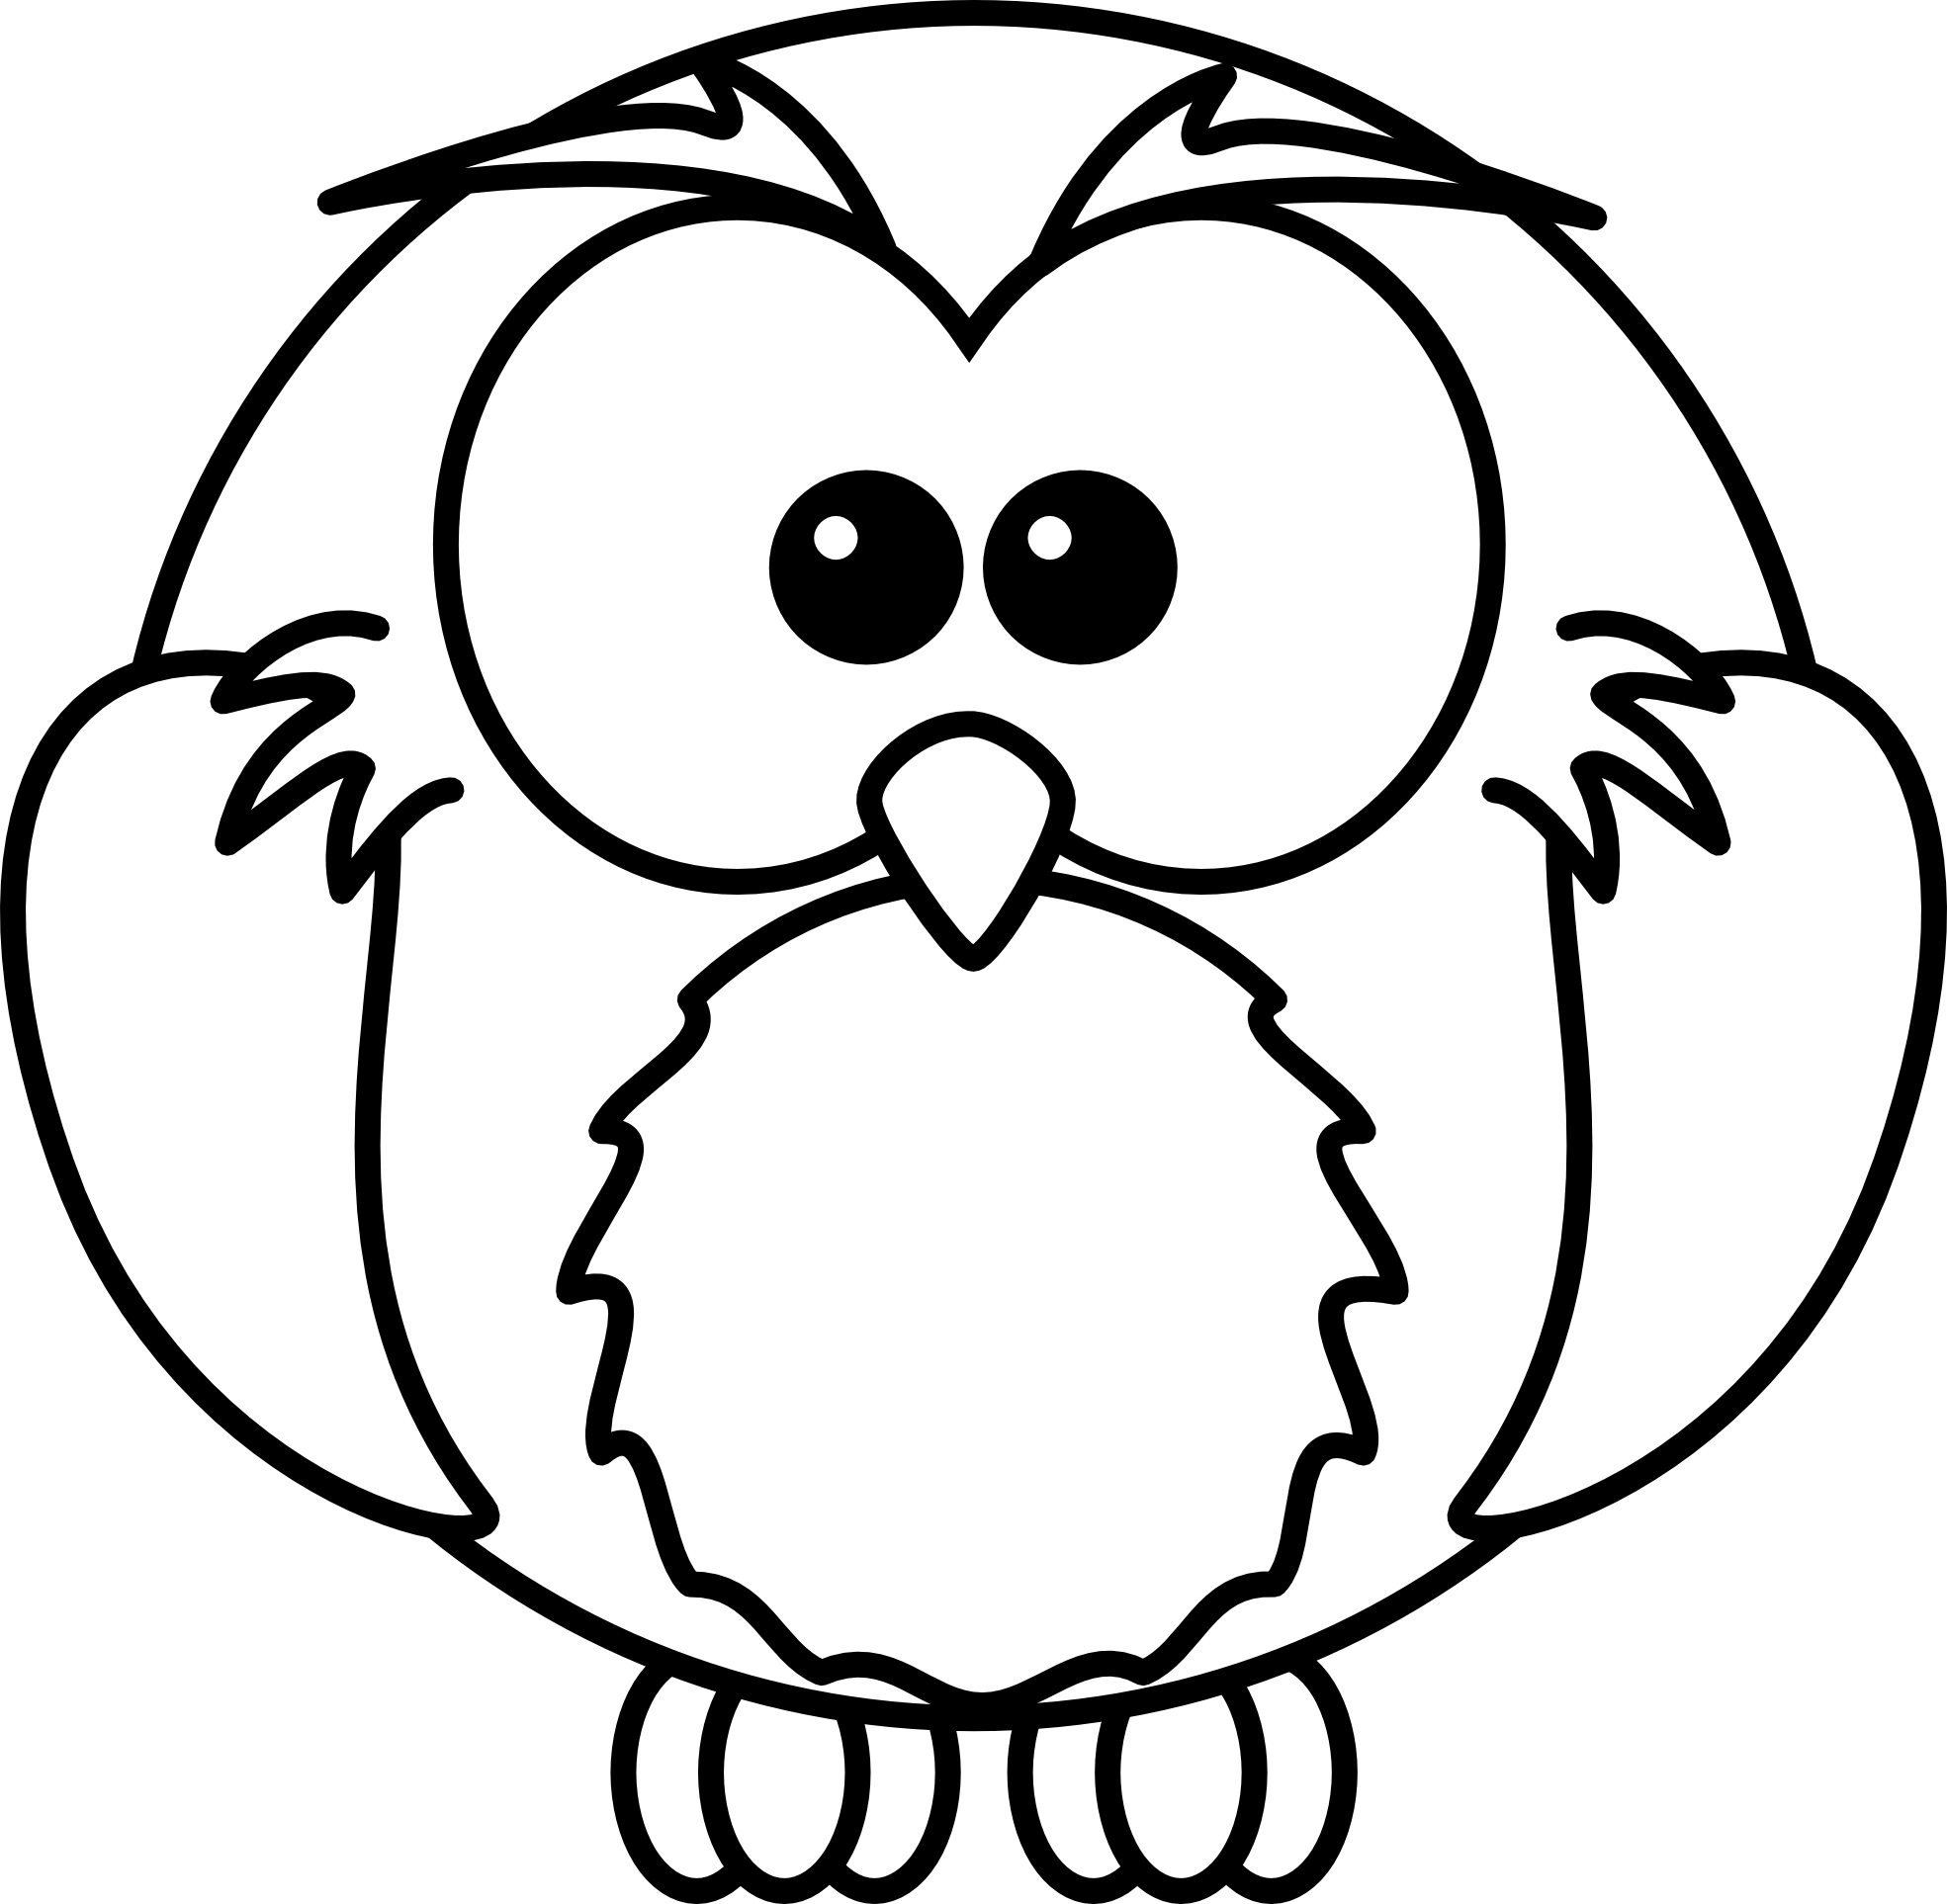 Baby Owl Clipart Black And White Cartoon Clip Art Black And White 1